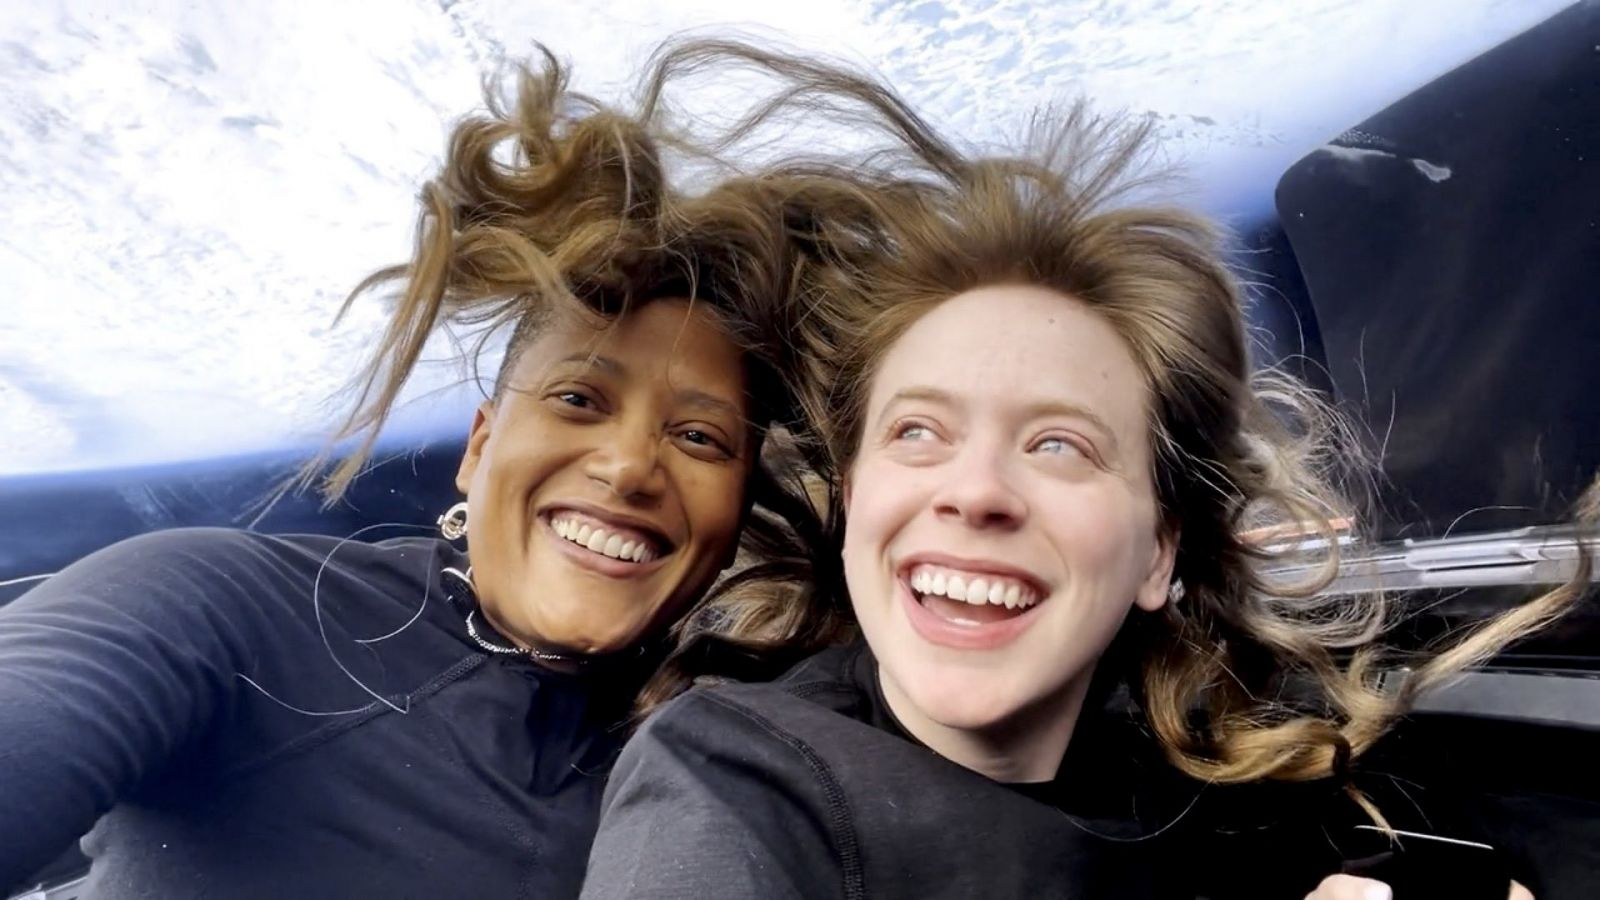 Sian Proctor, left, and Hayley Arceneaux in Dragon's cupola. Credit: Inspiration4